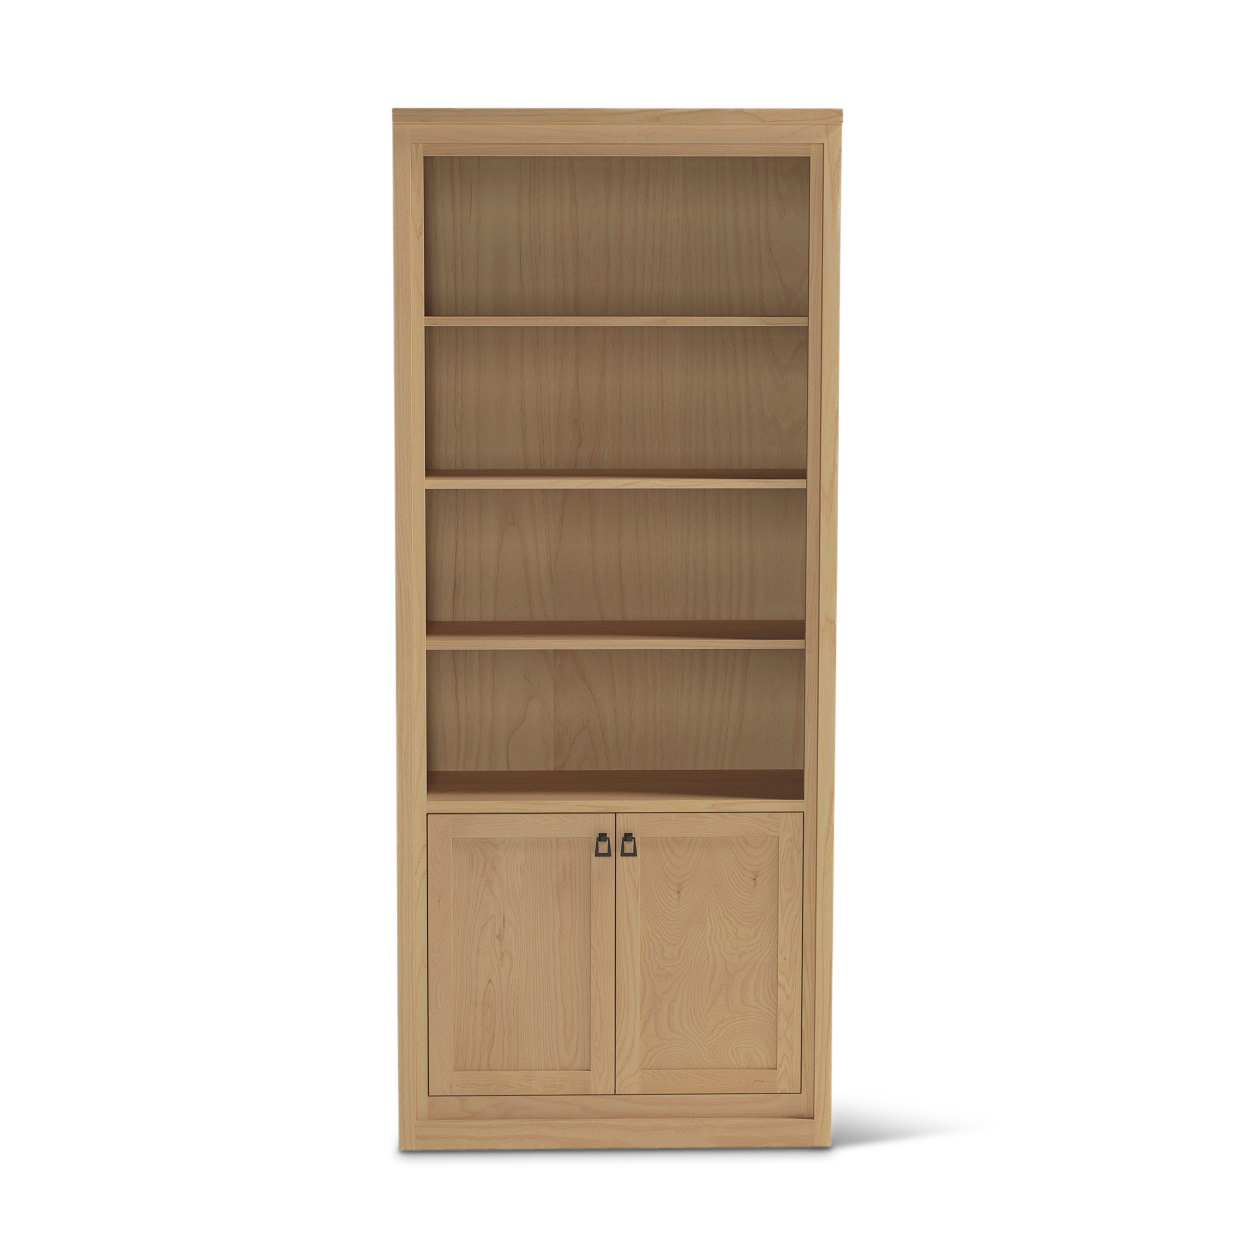 "82"" tall Framed_44 modern ash wood contemporary bookshelf with doors"